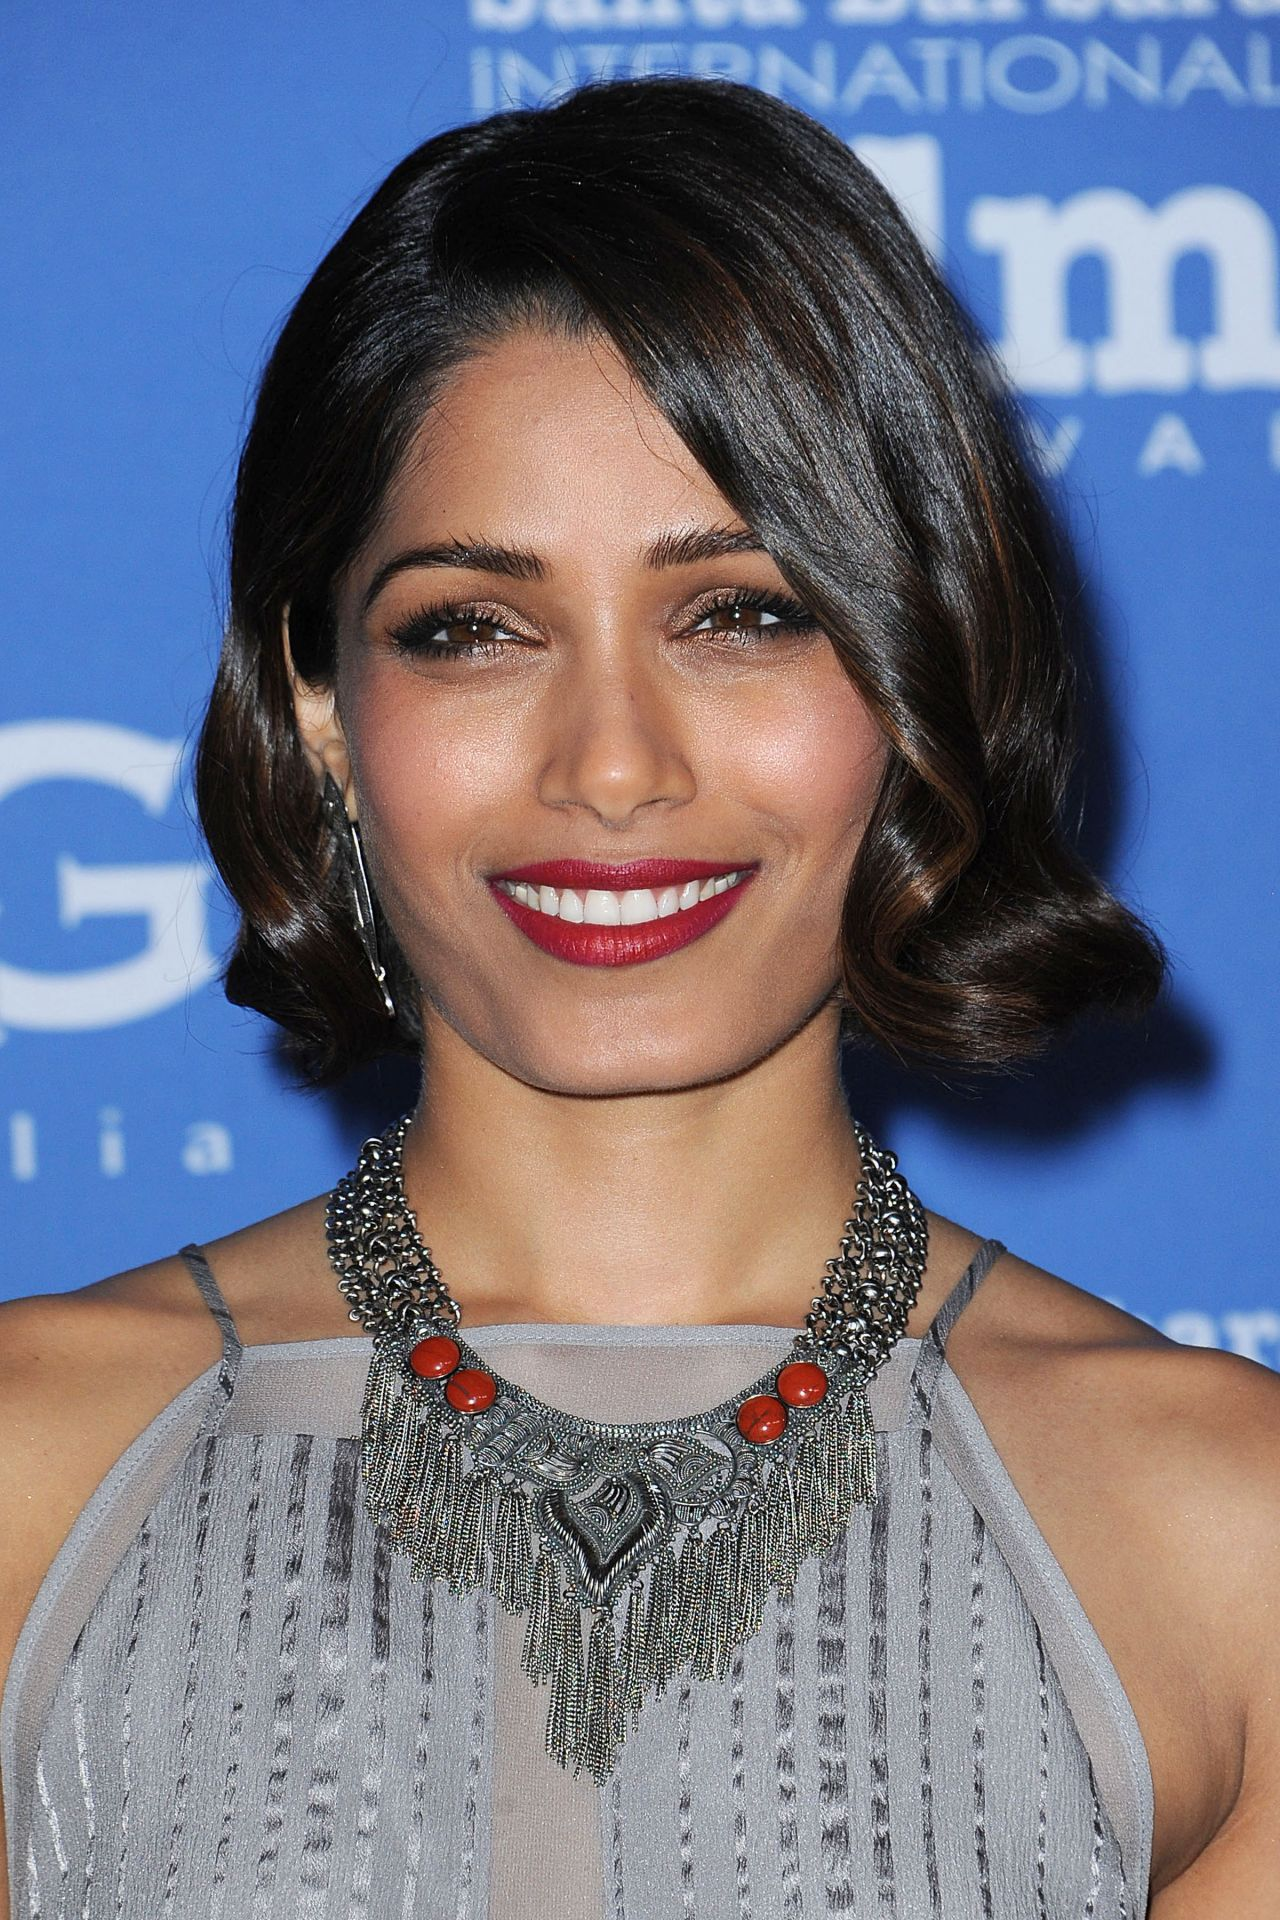 freida-pinto-2015-santa-barbara-international-film-festival_1